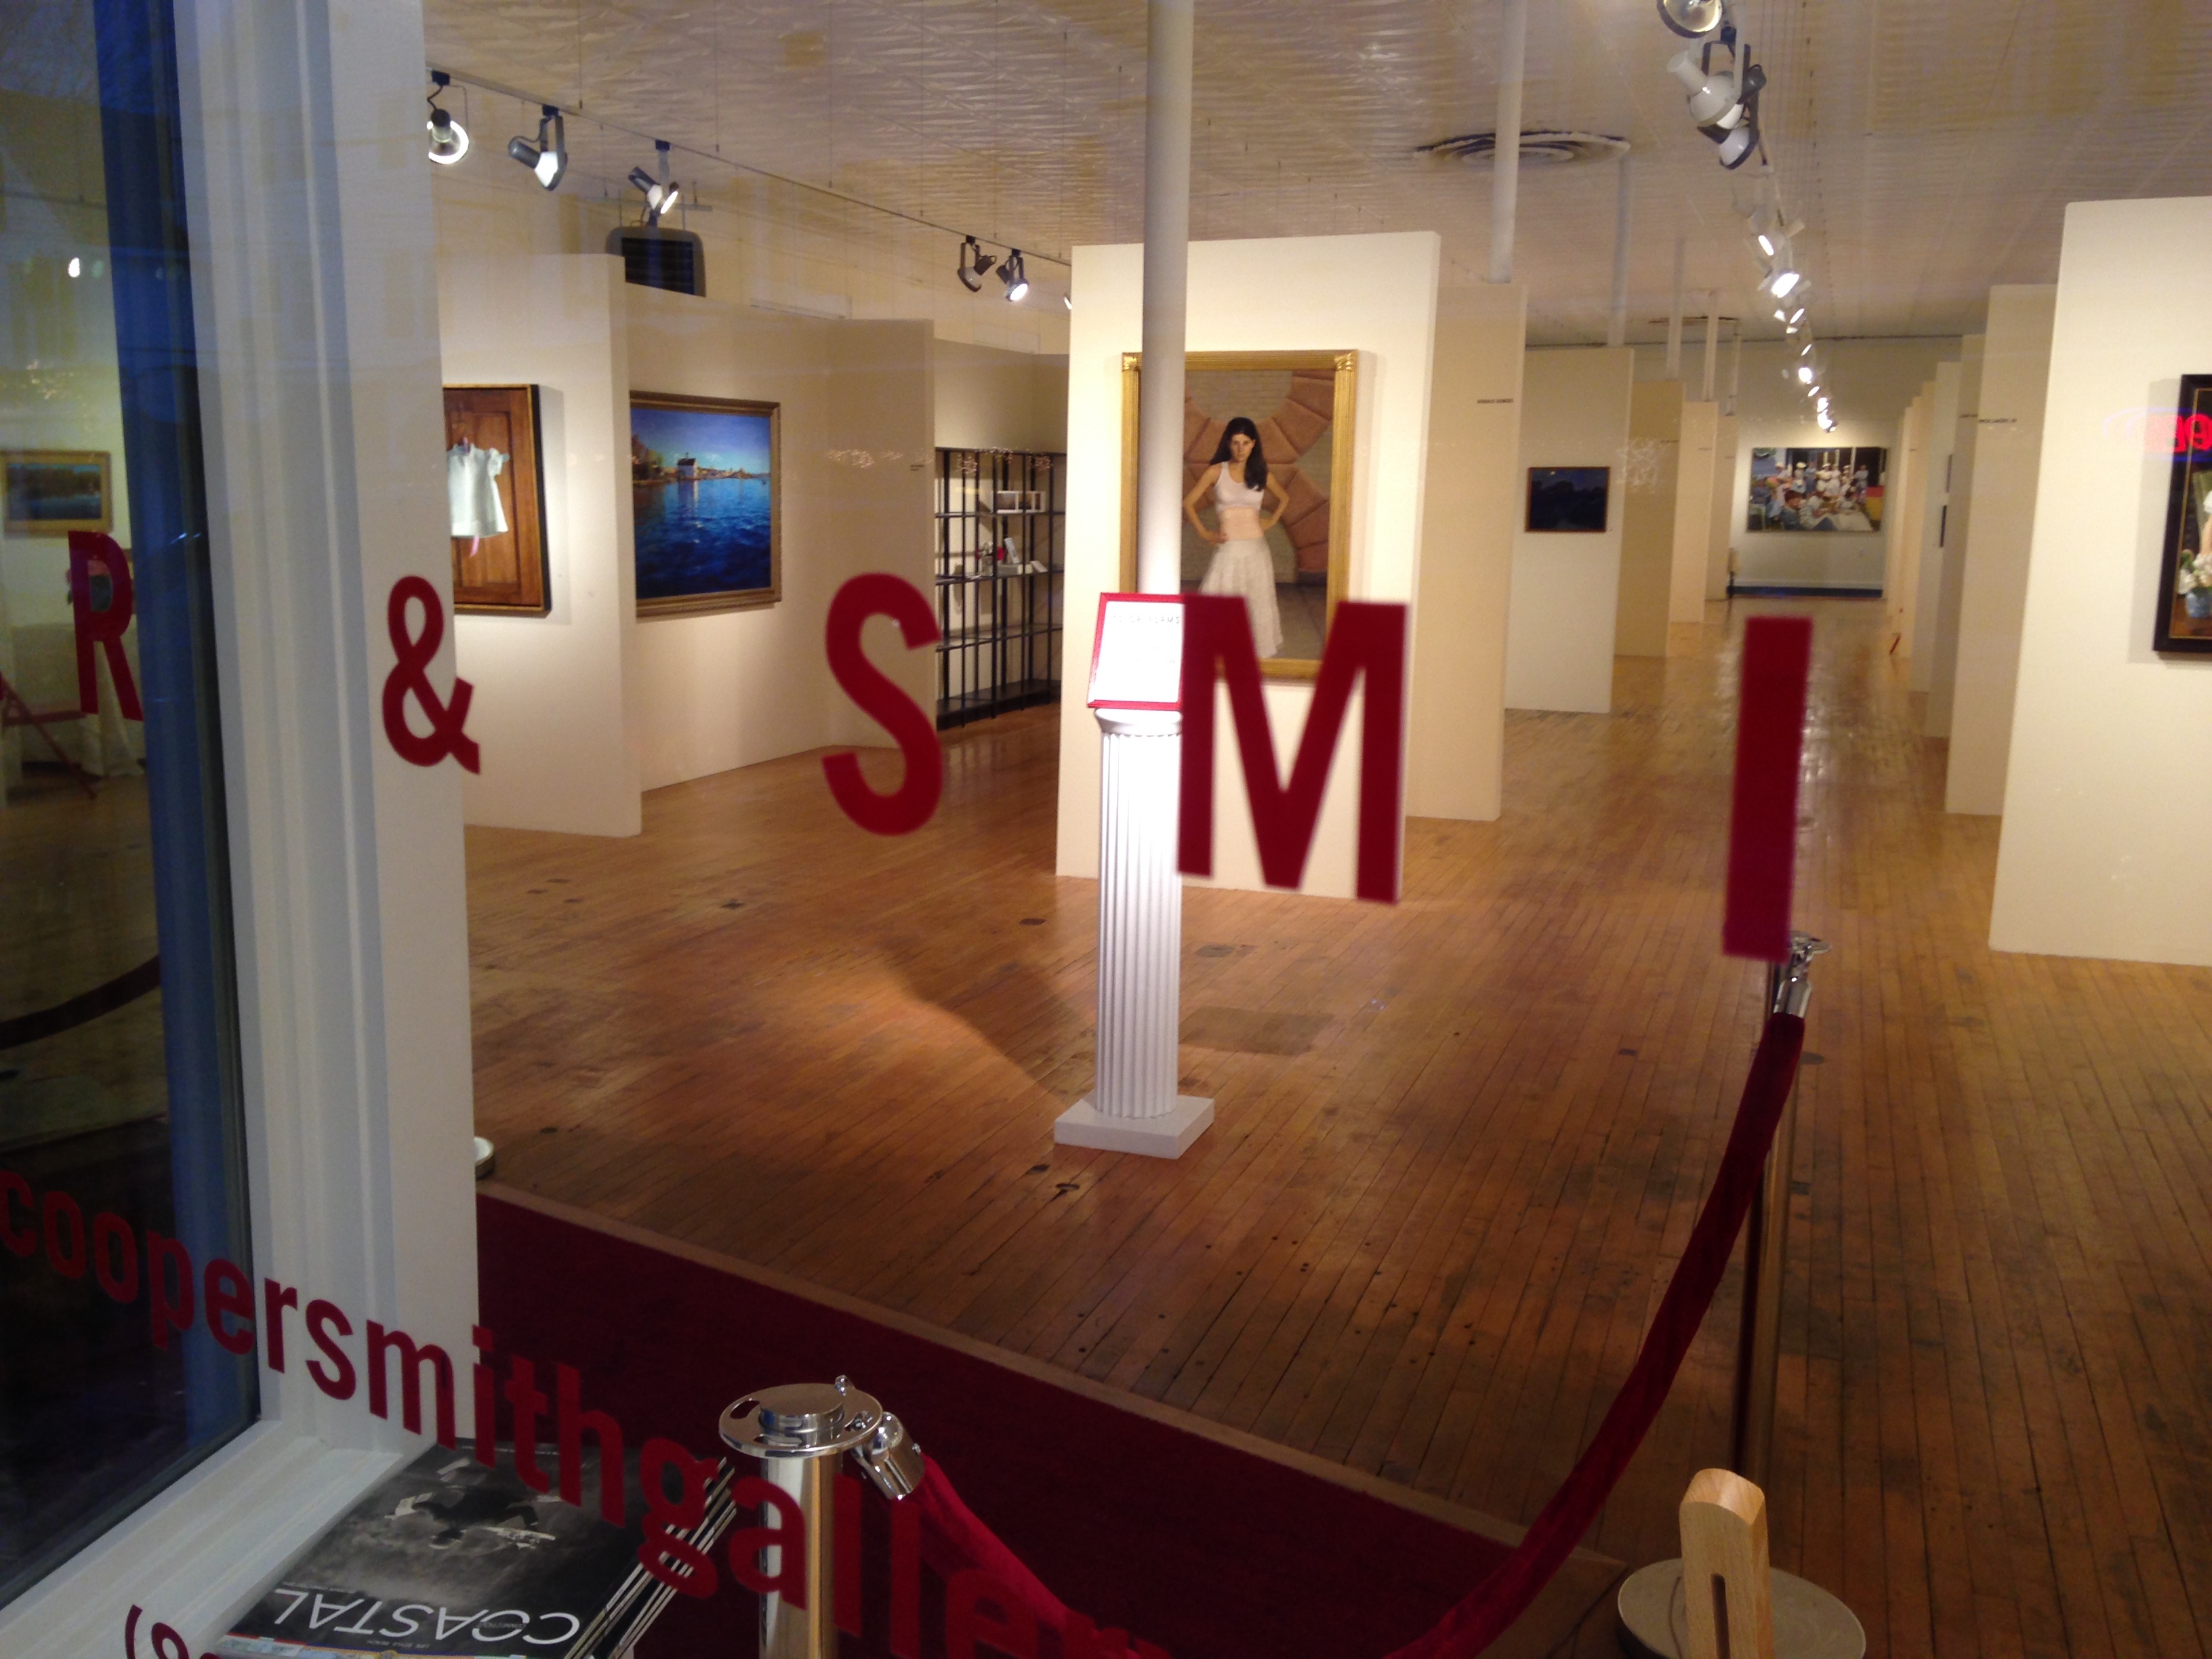 Cooper & Smith Gallery